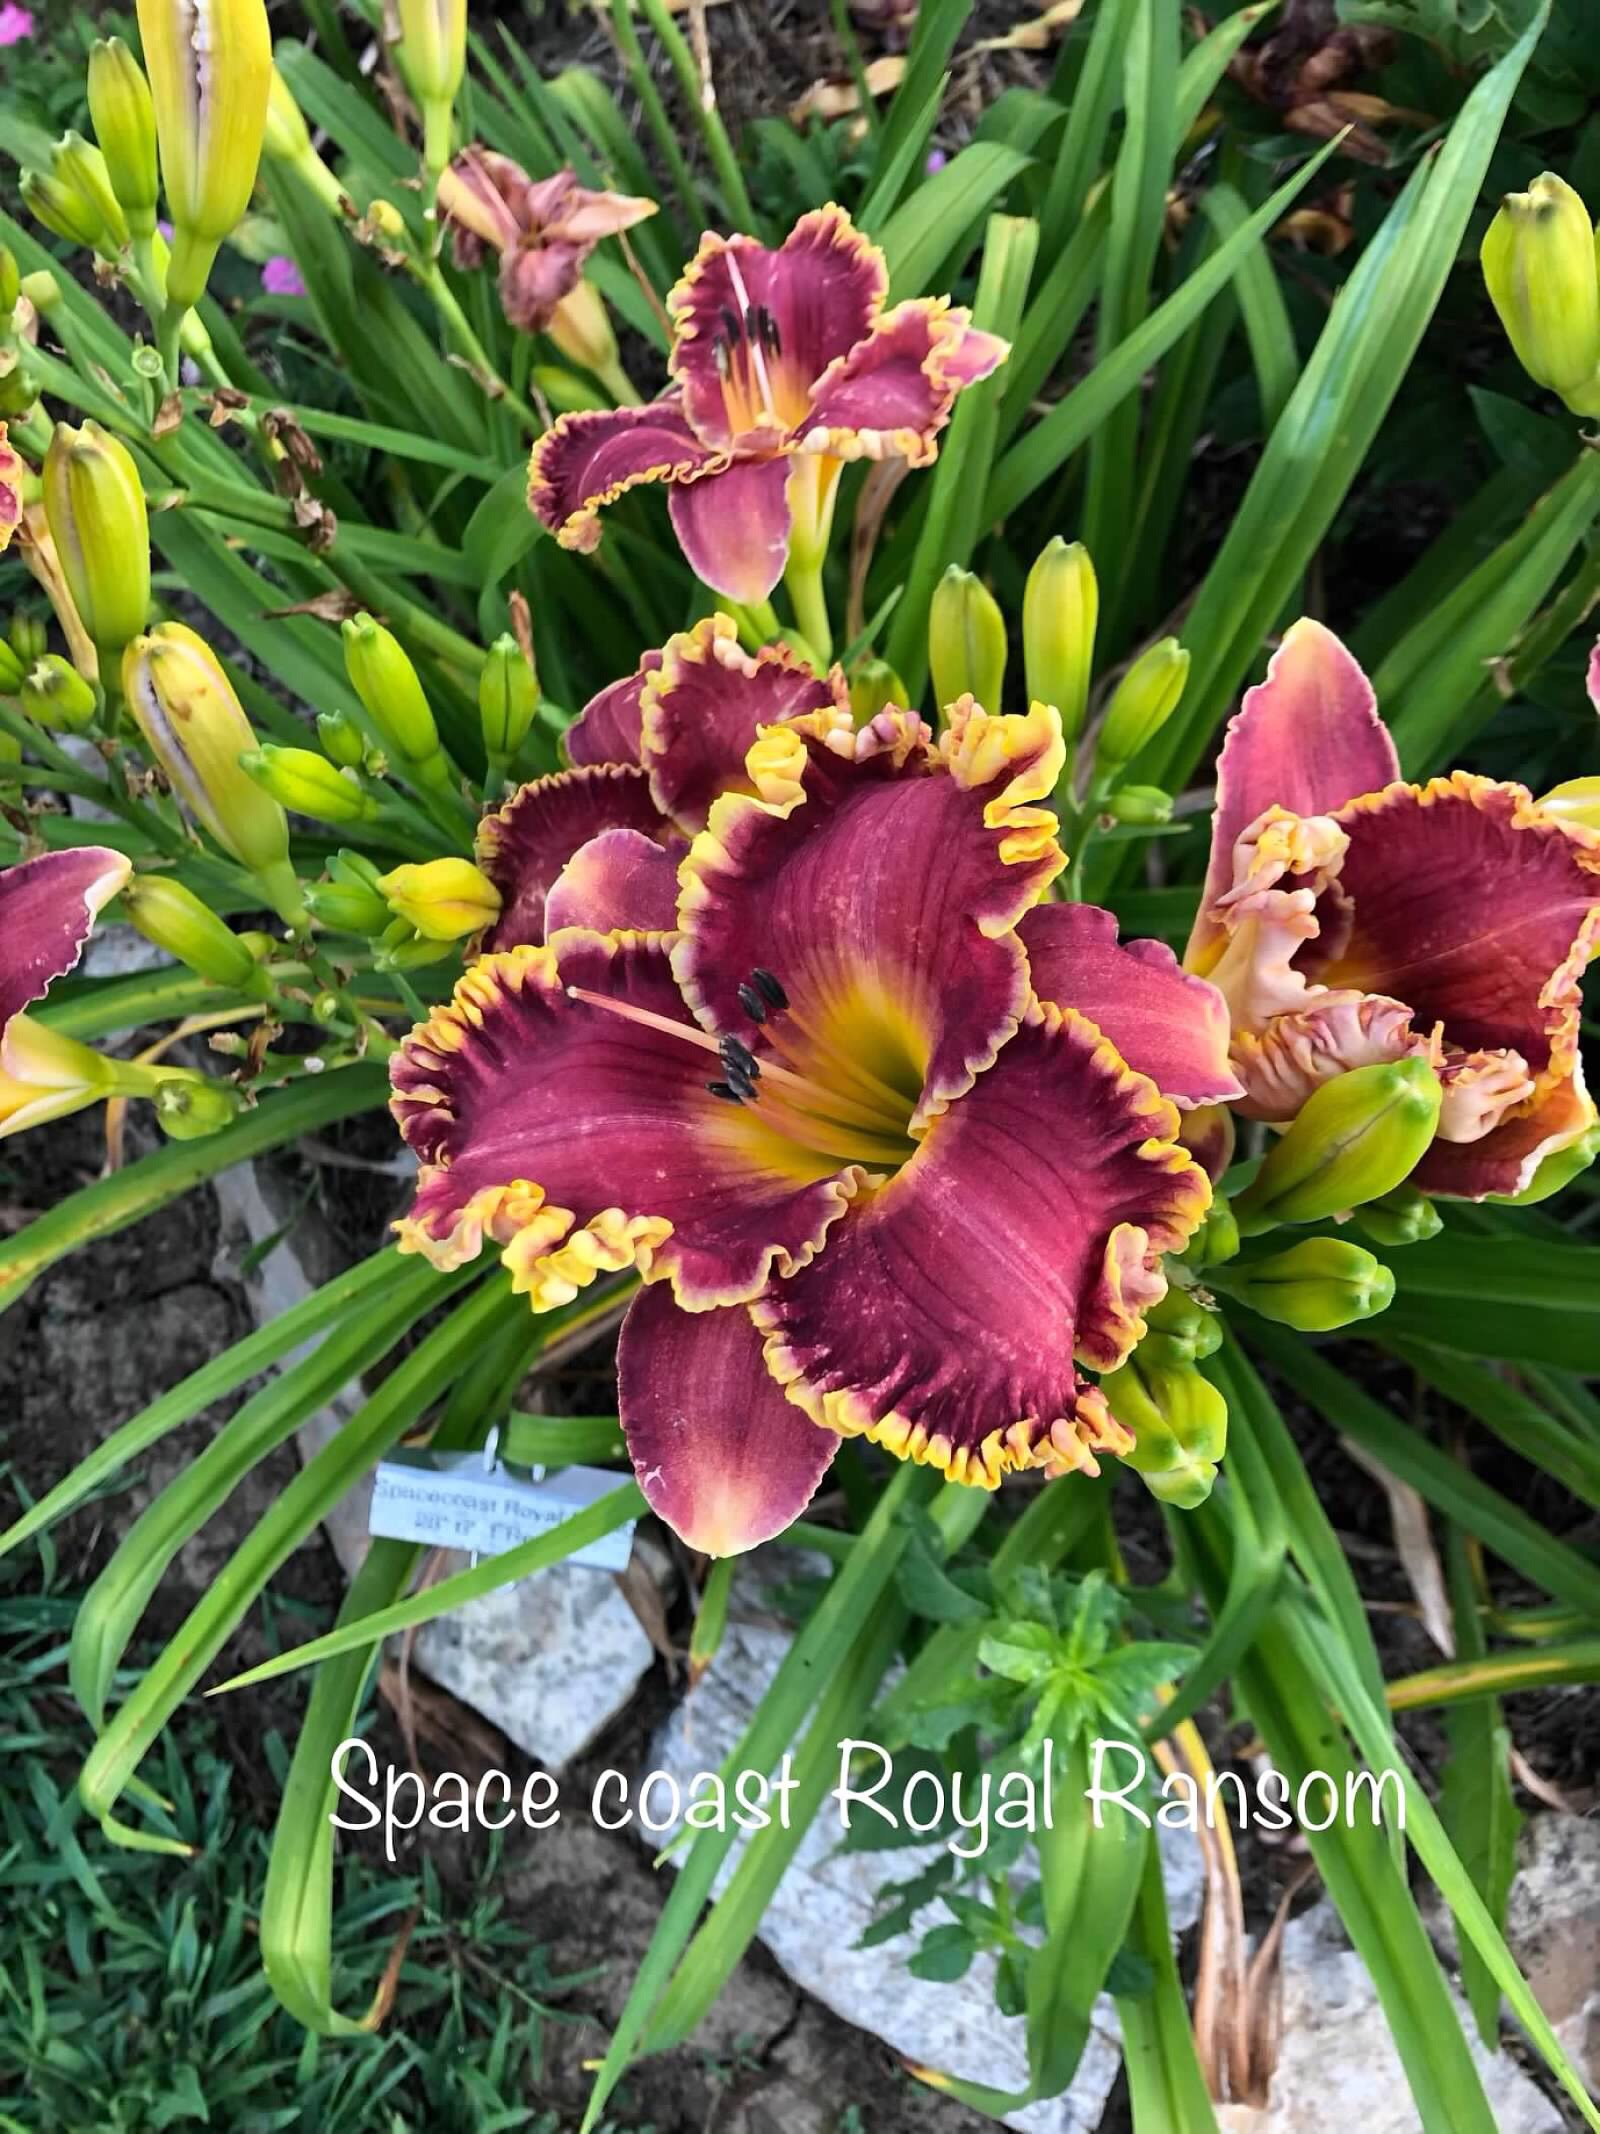 Daylily 'Space Coast Royal Ransom'